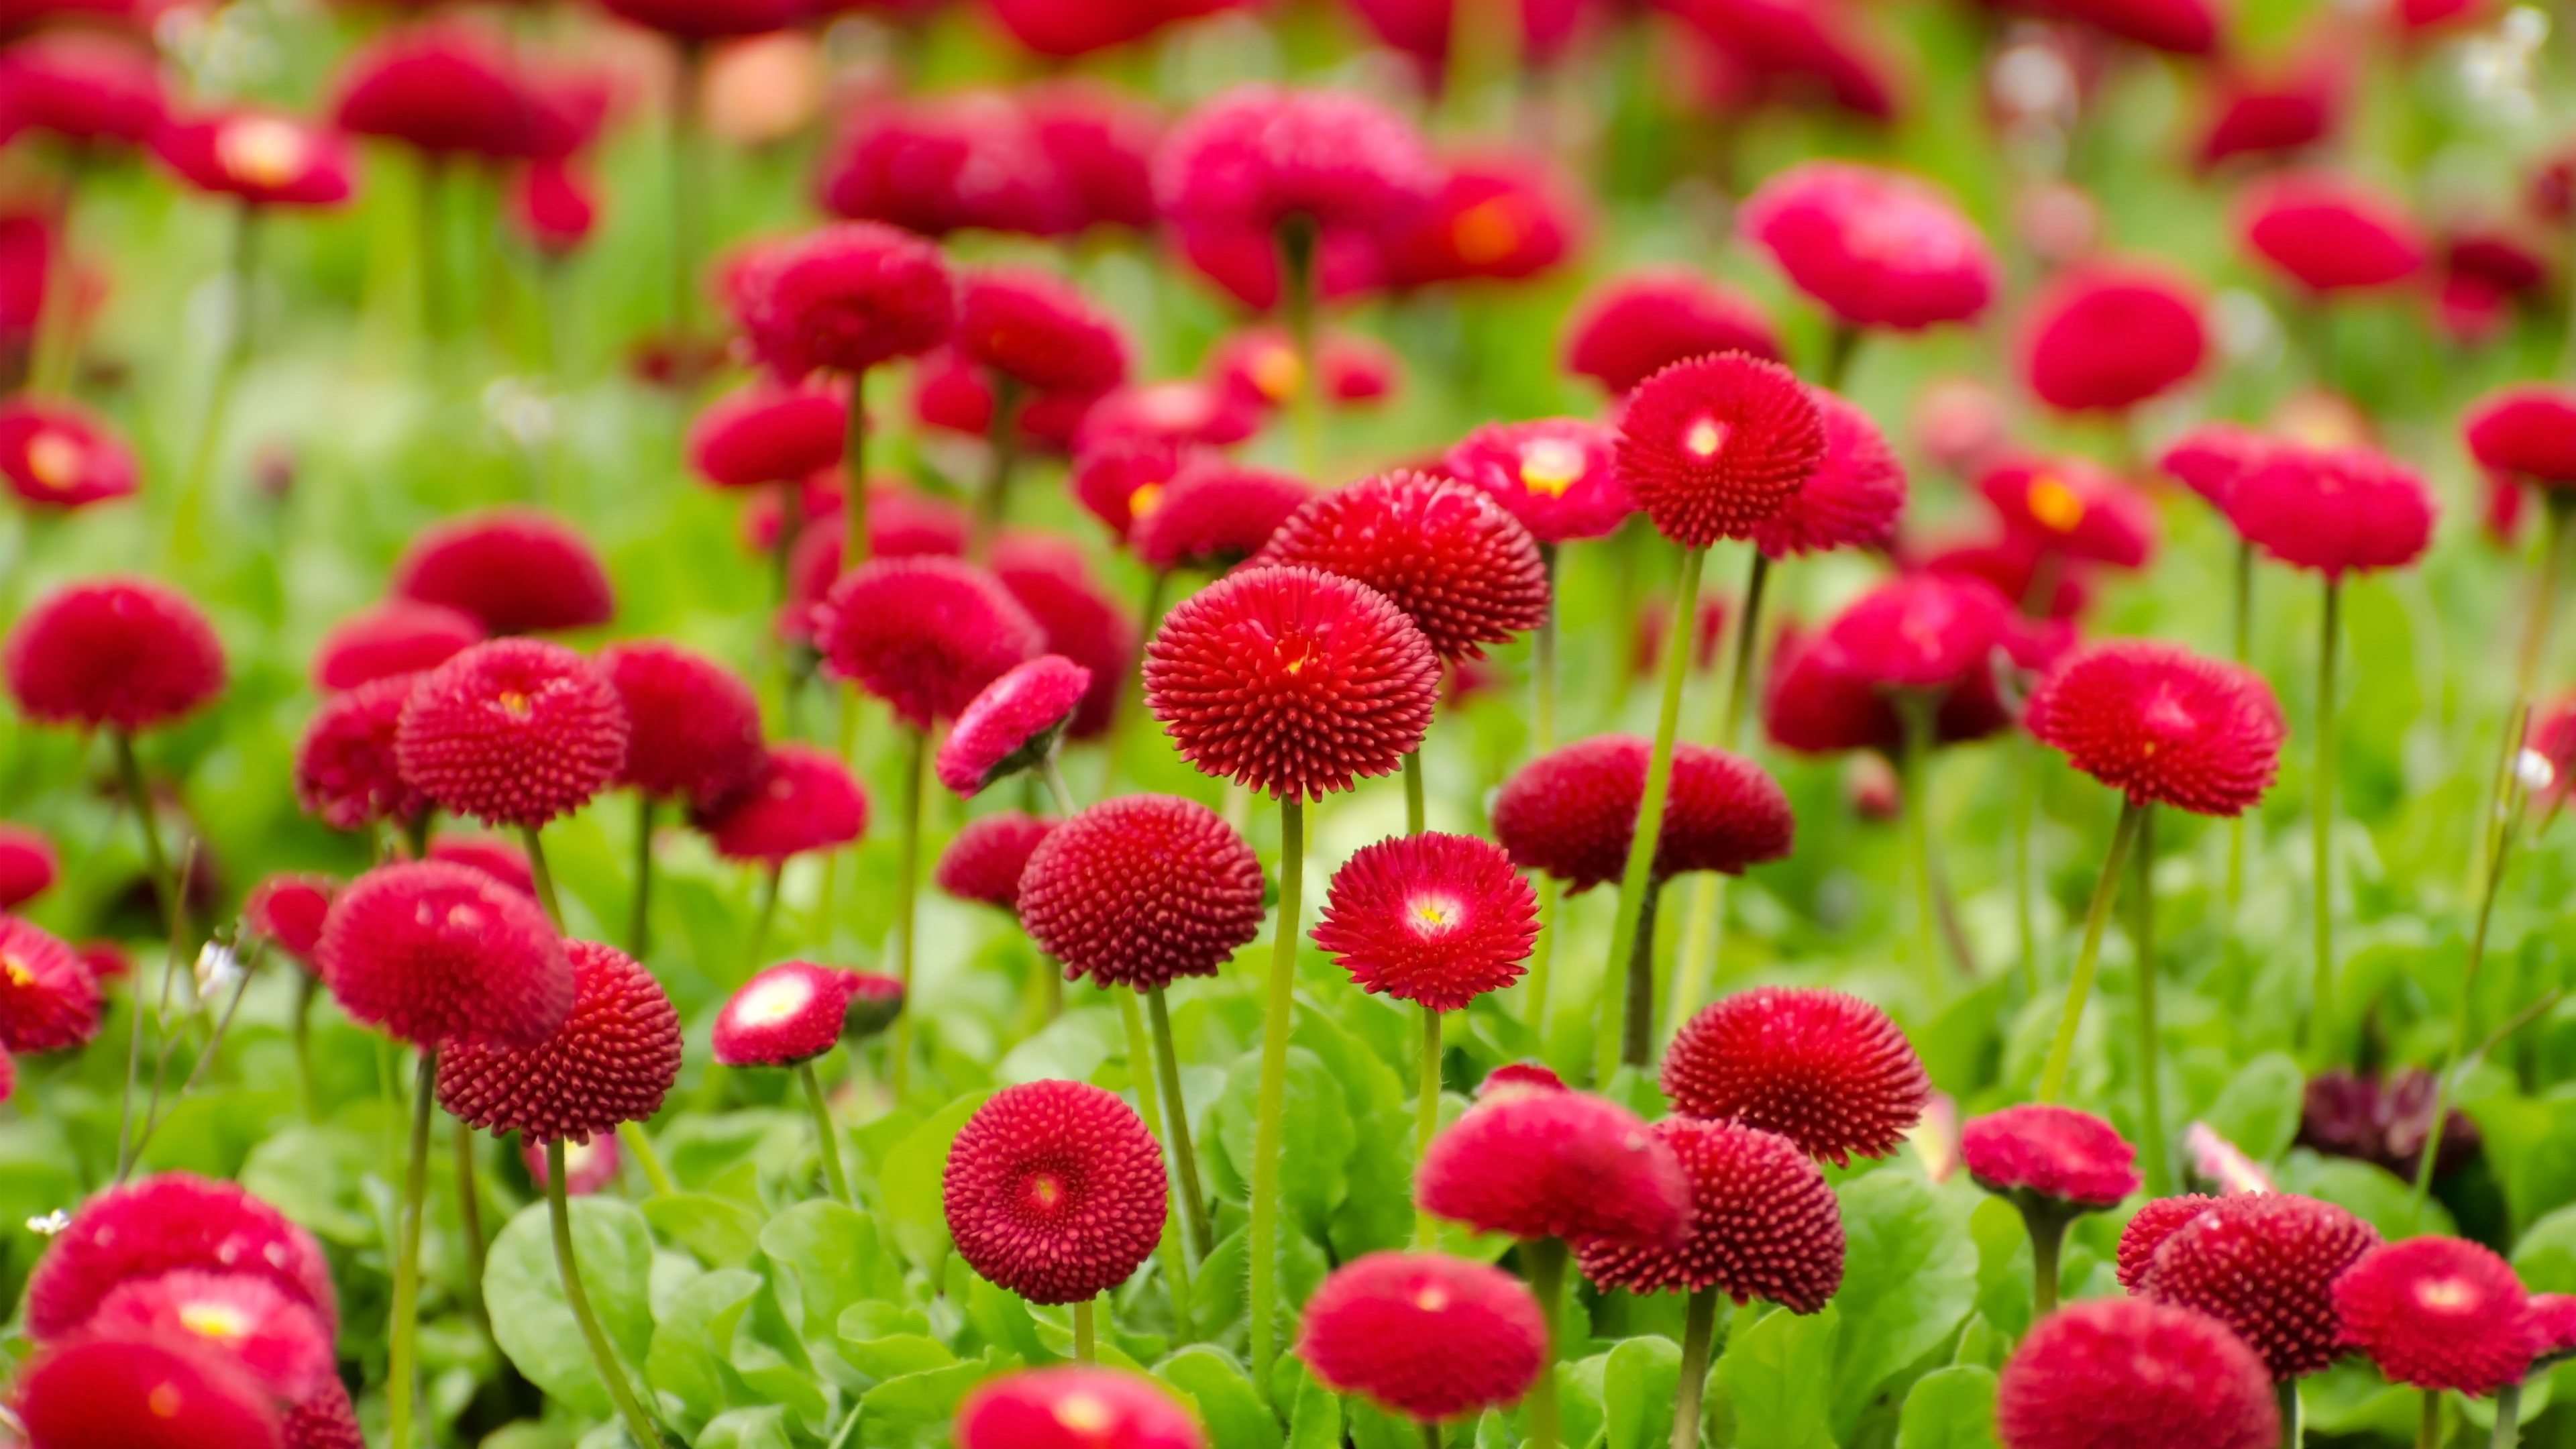 Red flowers wallpaper wallpapers for free download about (3,596 ...